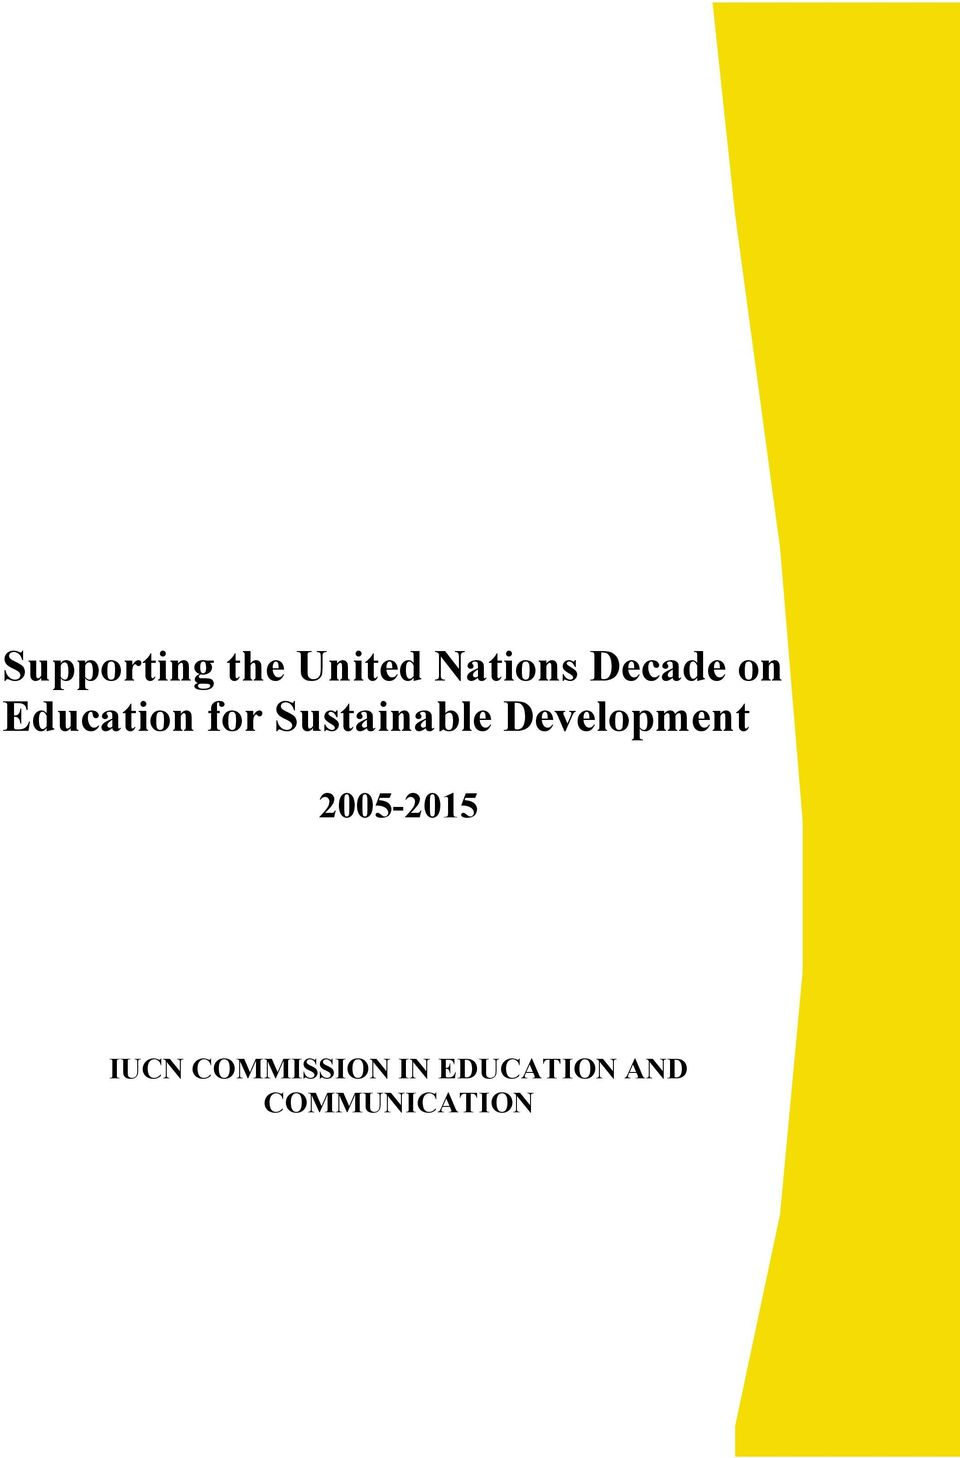 Sustainable Development 2005-2015